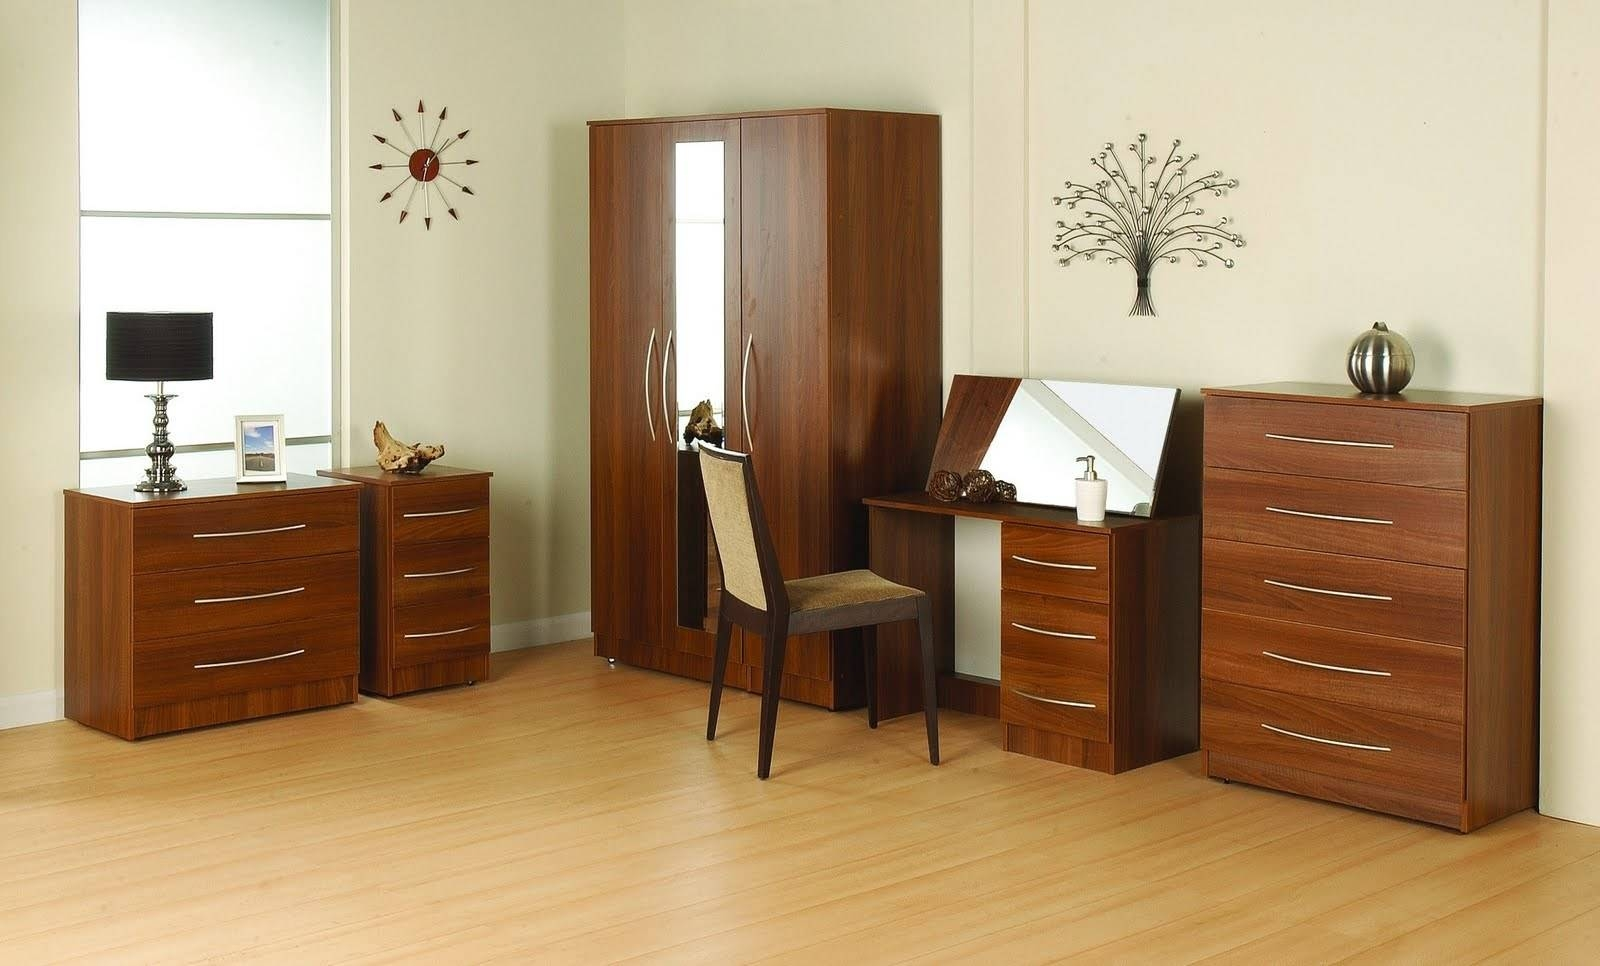 35+ Images Of Wardrobe Designs For Bedrooms with Dark Wood Wardrobes (Image 5 of 30)